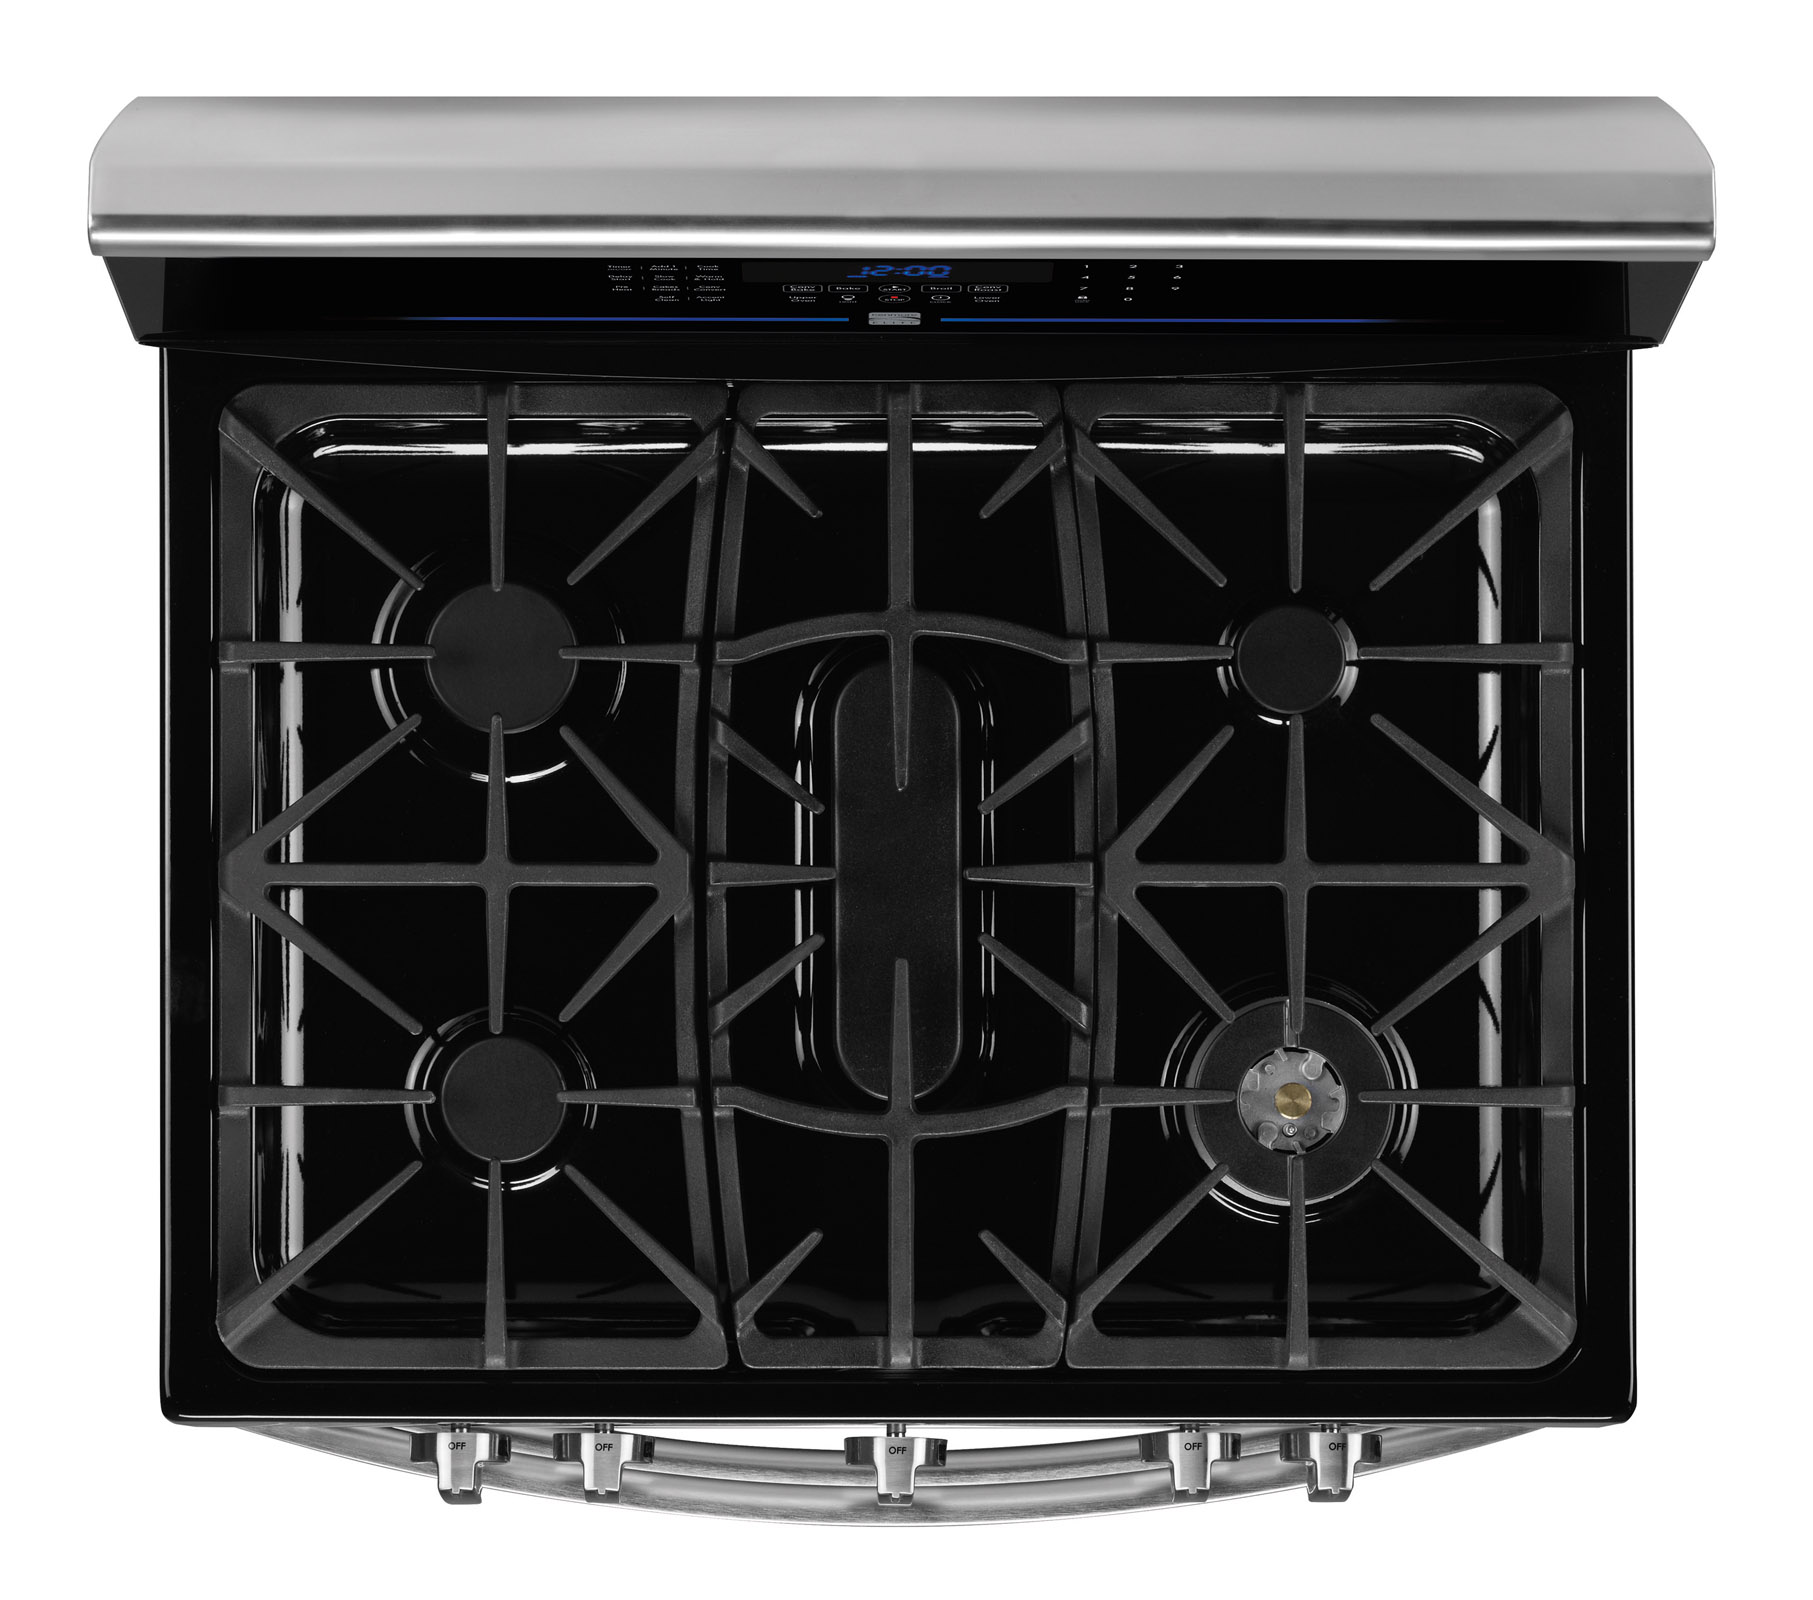 Kenmore Elite 78053 5.9 cu. ft. Double-Oven Gas Range - Stainless w/ Black Top